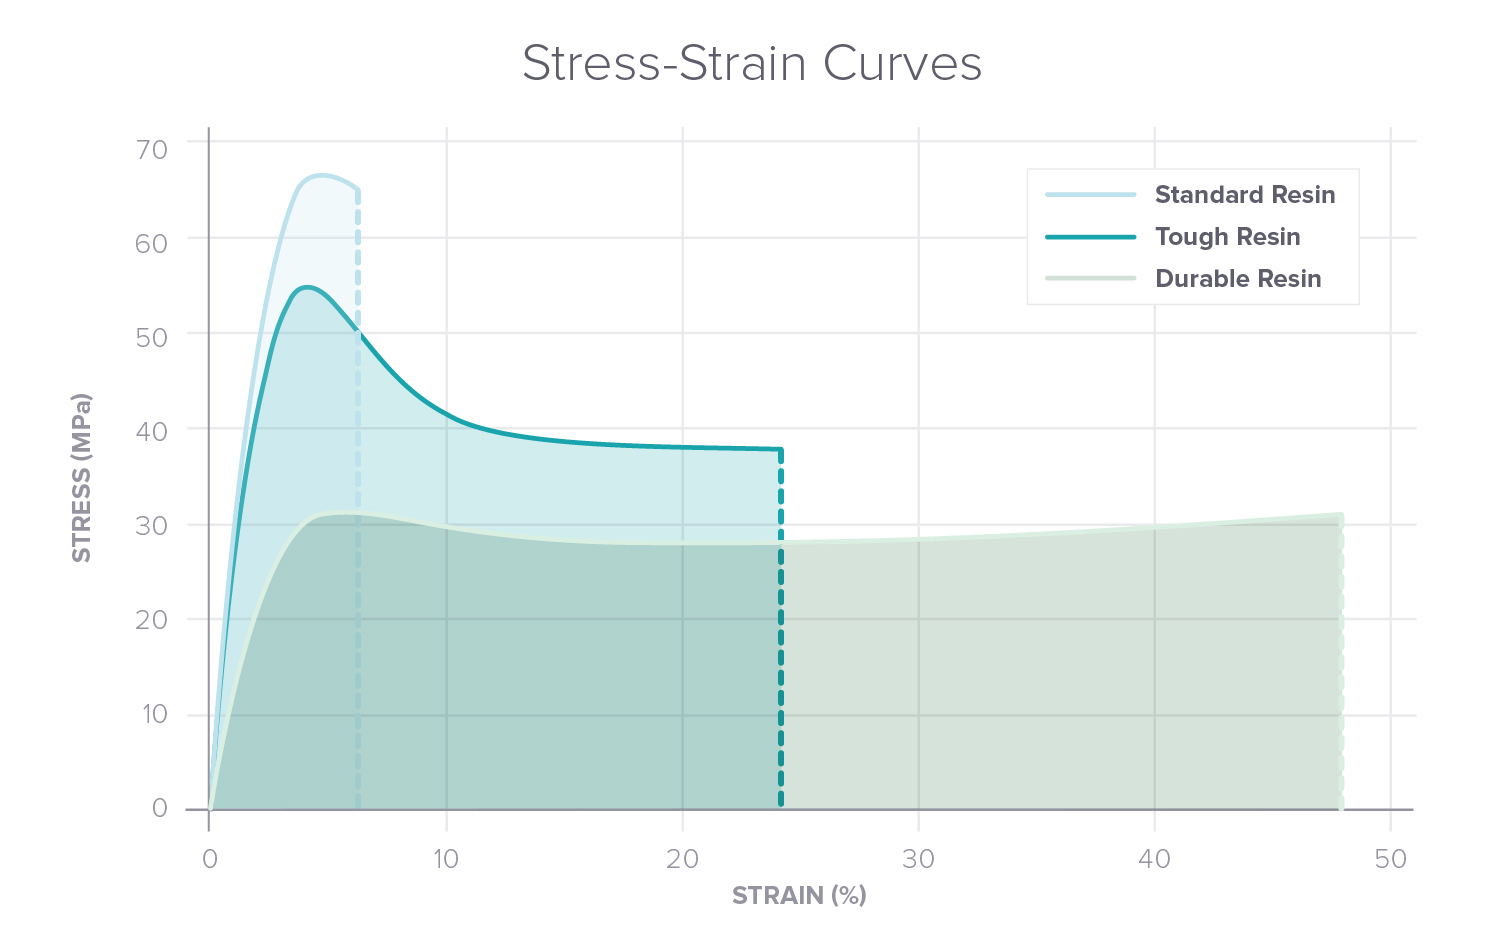 Stress-strain curves for common SLA engineering and standard materials